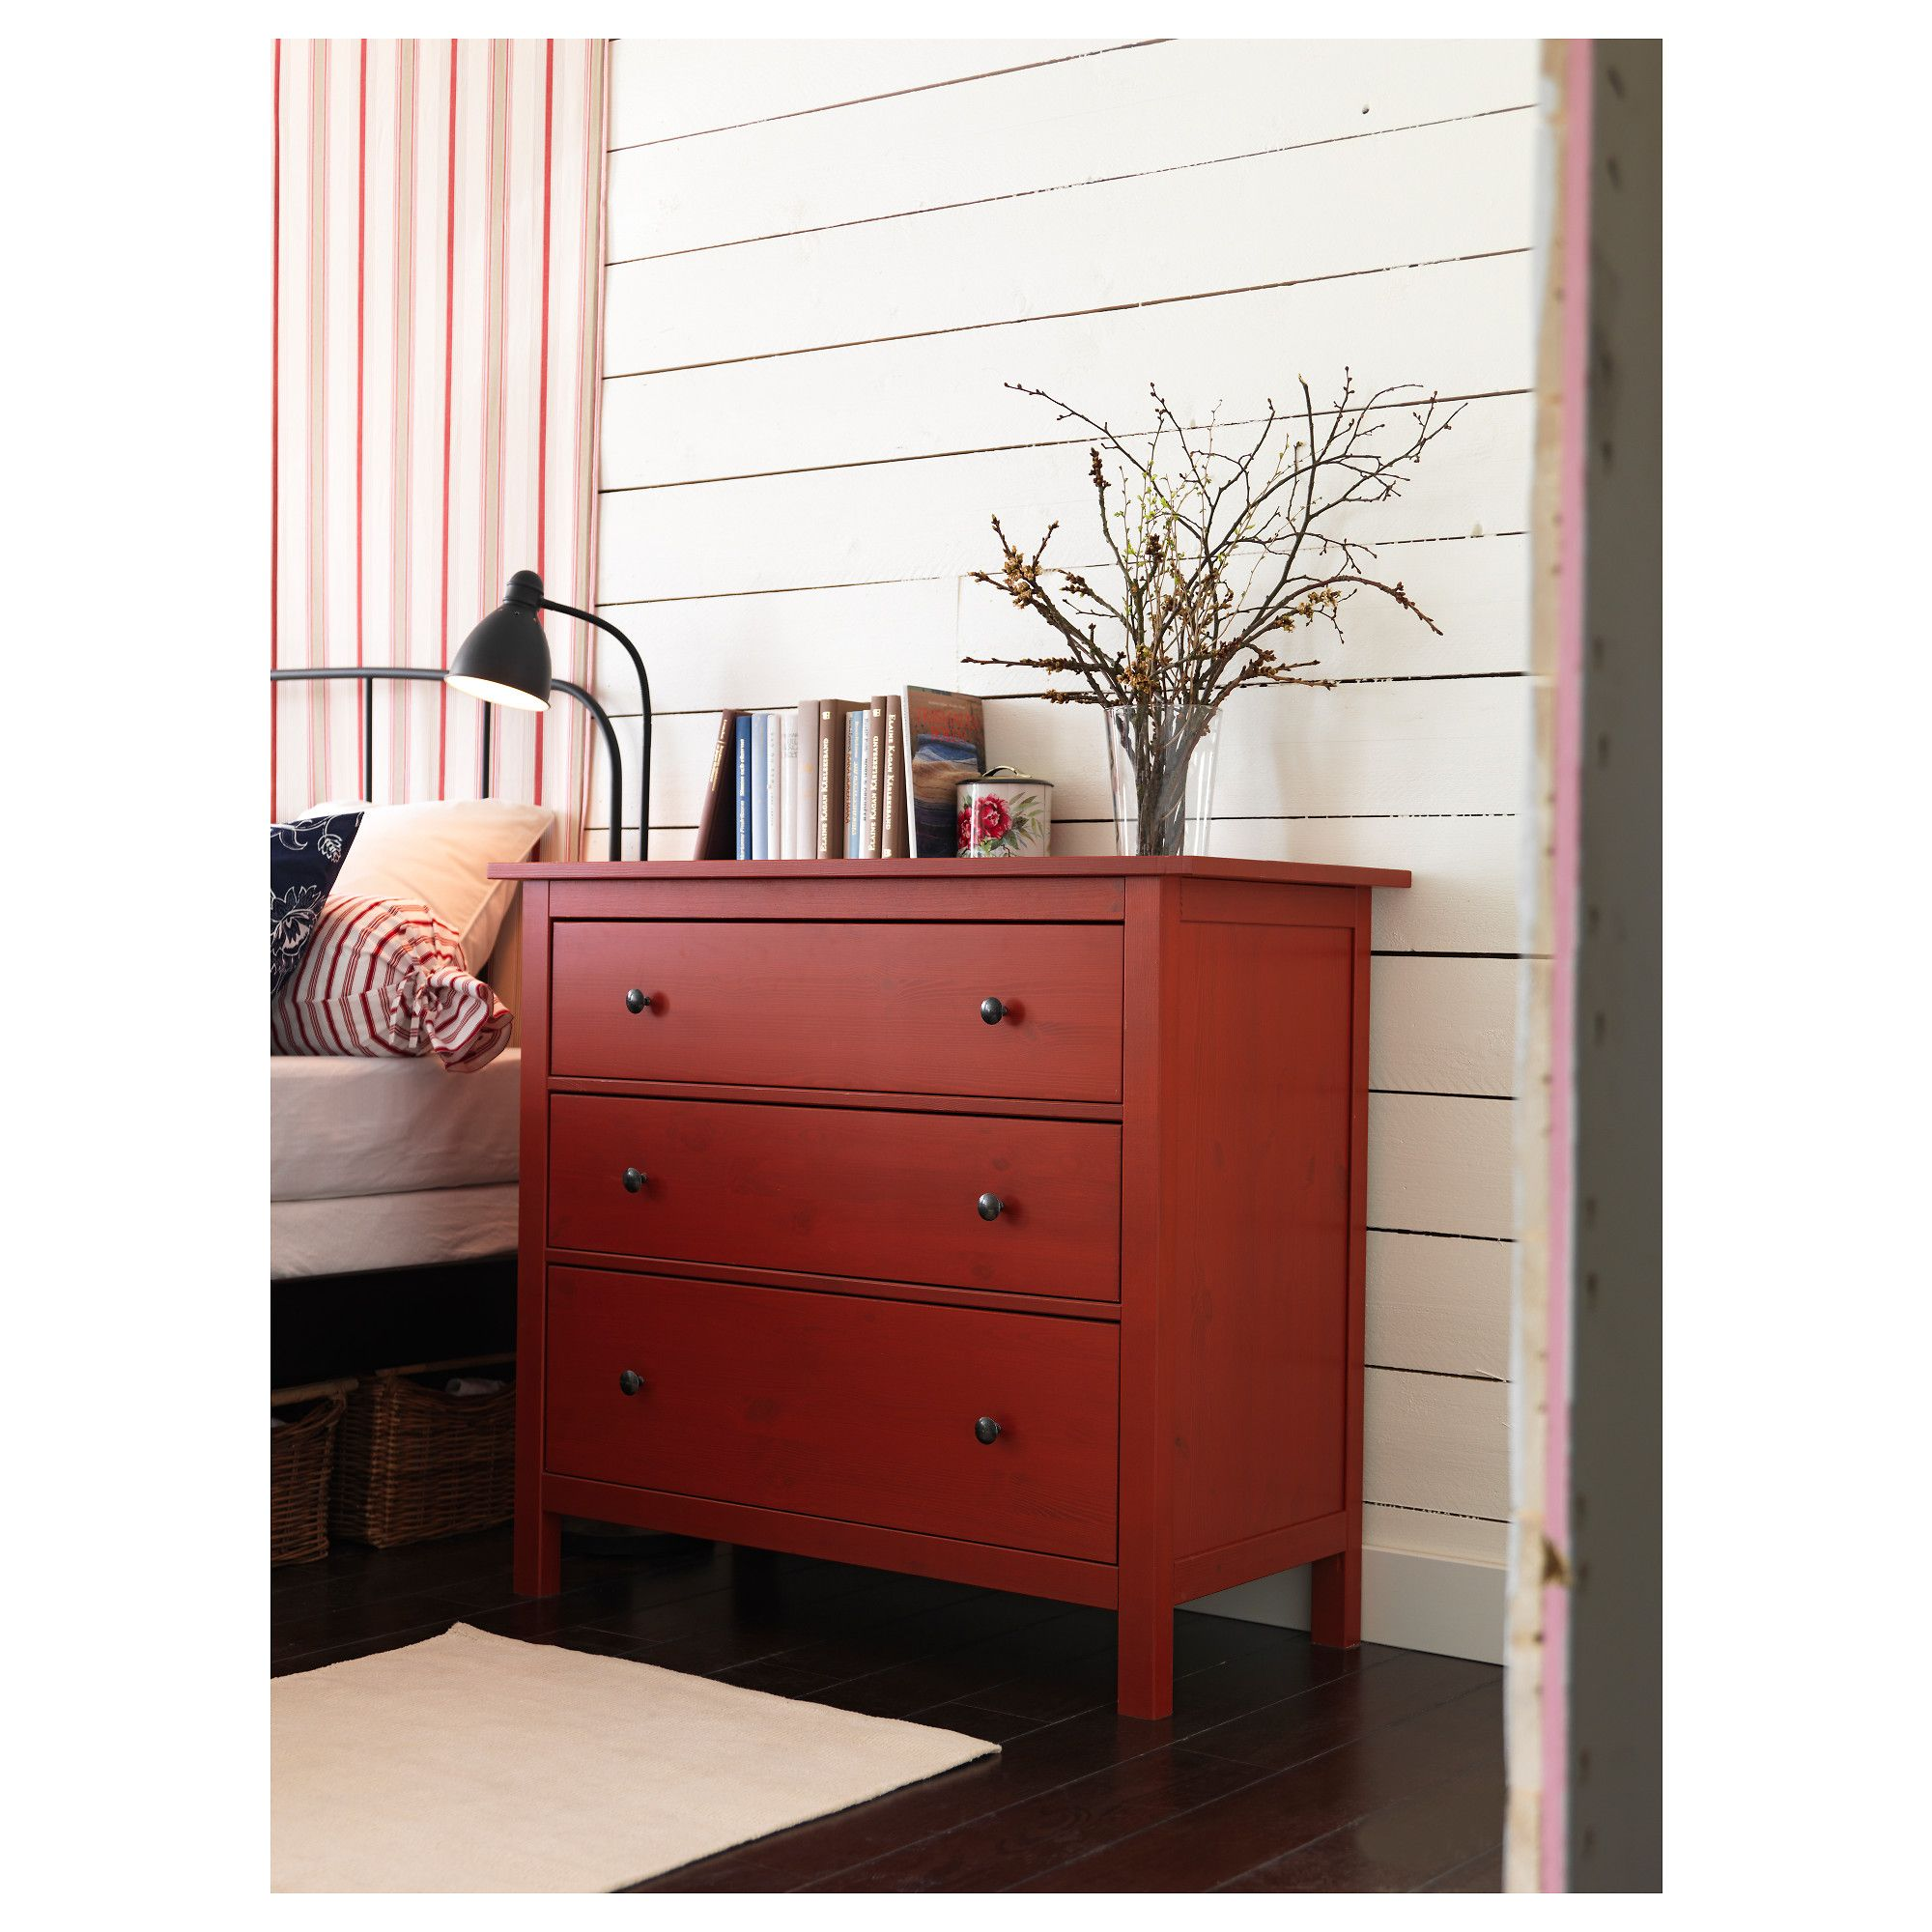 Ikea Us Furniture And Home Furnishings Dresser In Living Room Bedroom Trends Home Furniture